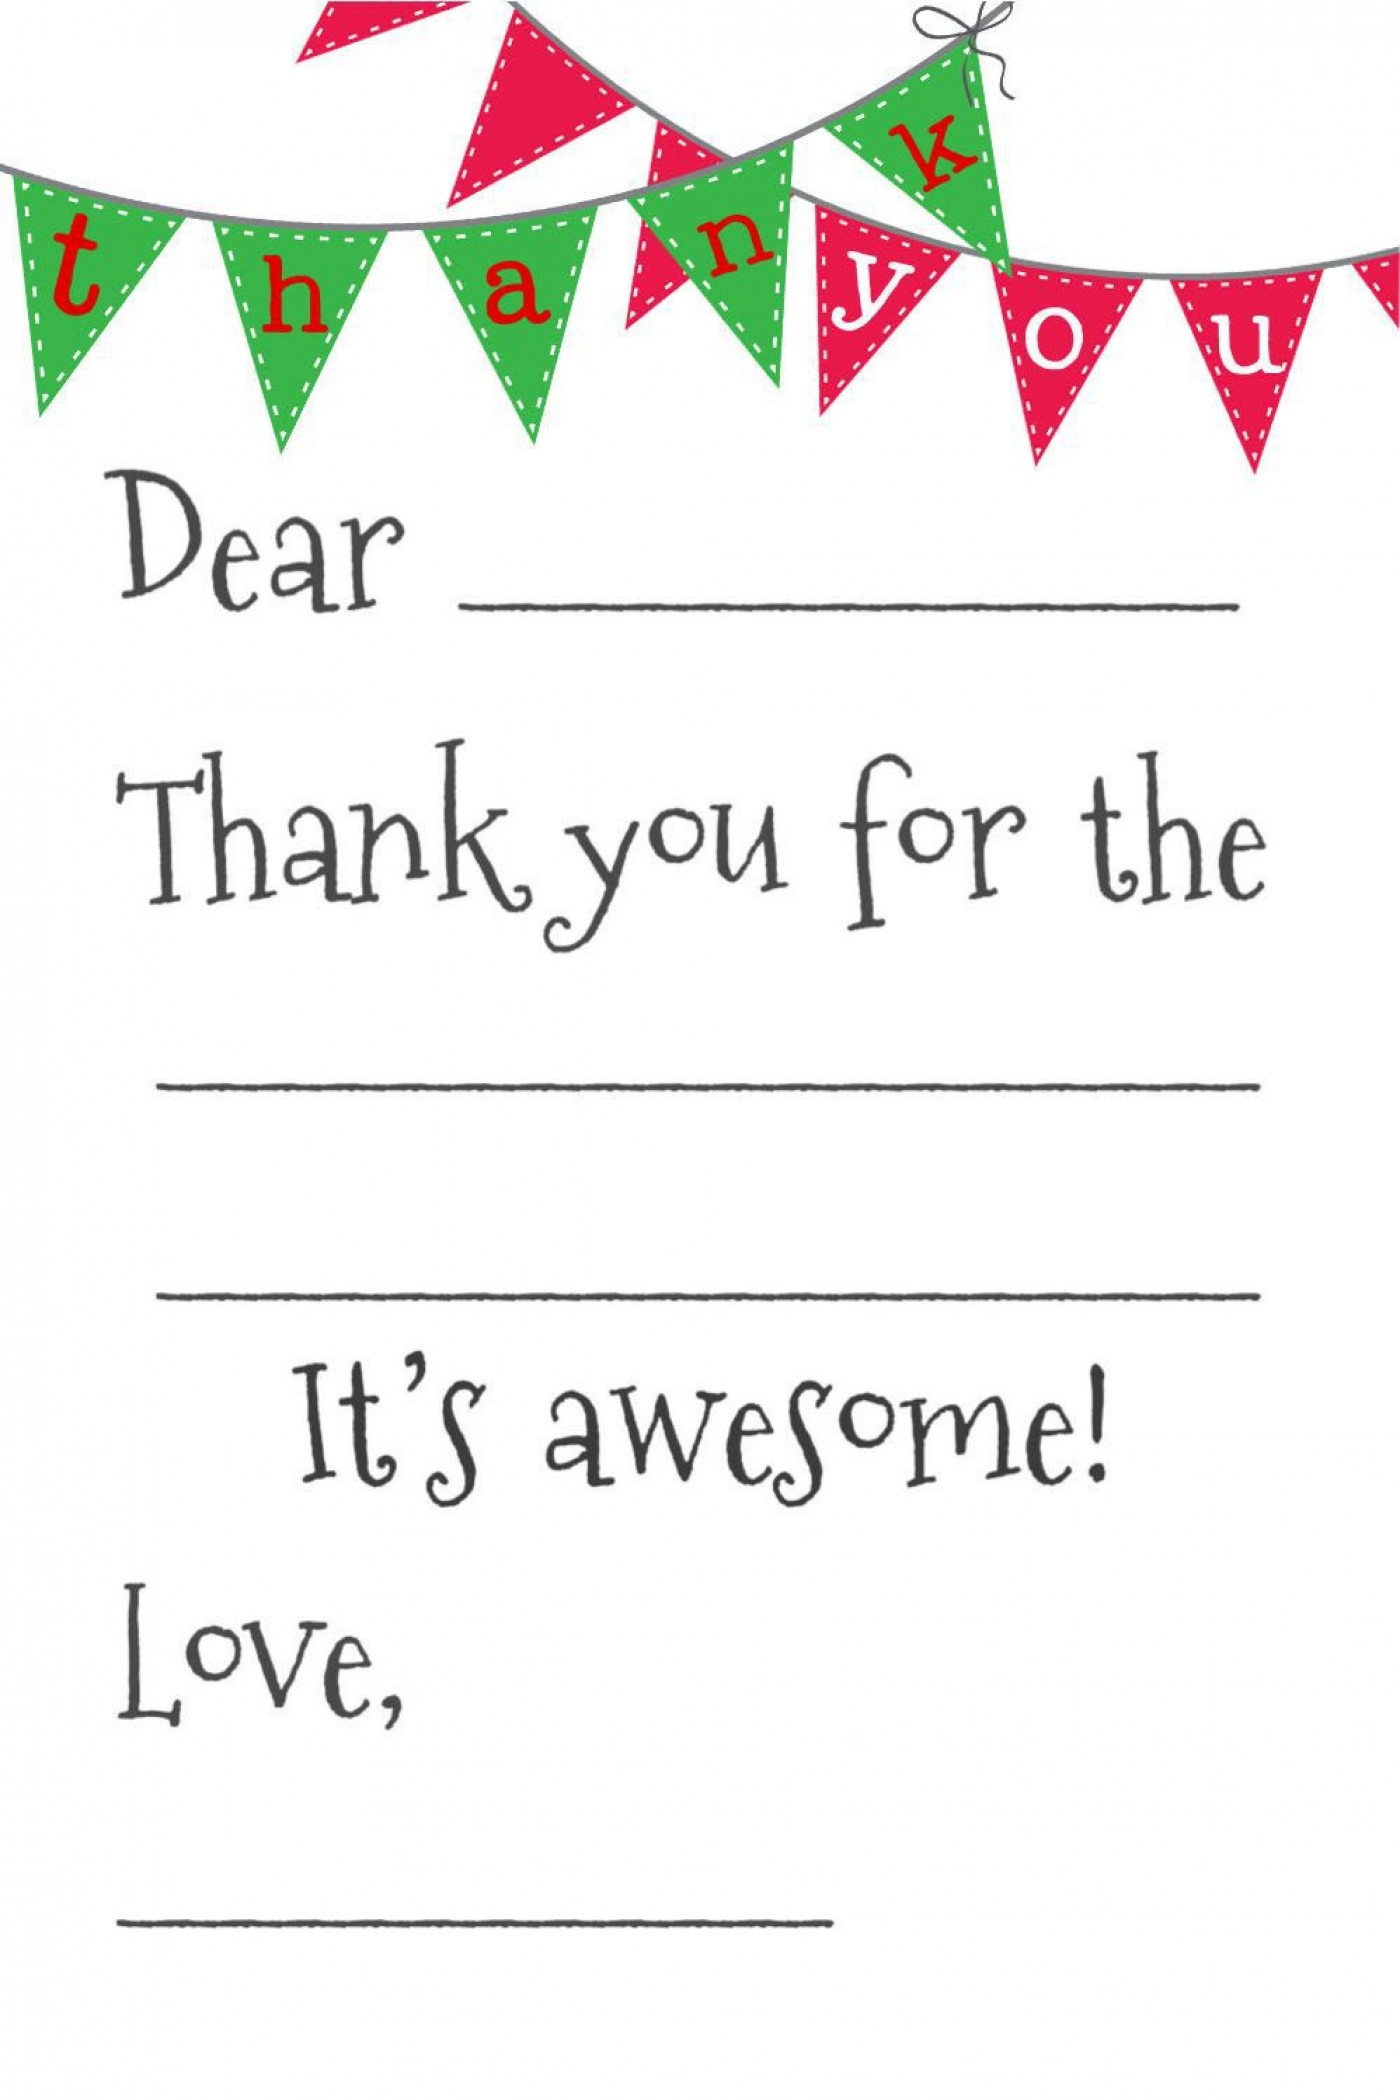 006 Marvelou Thank You Note Card Template Word Concept 1400